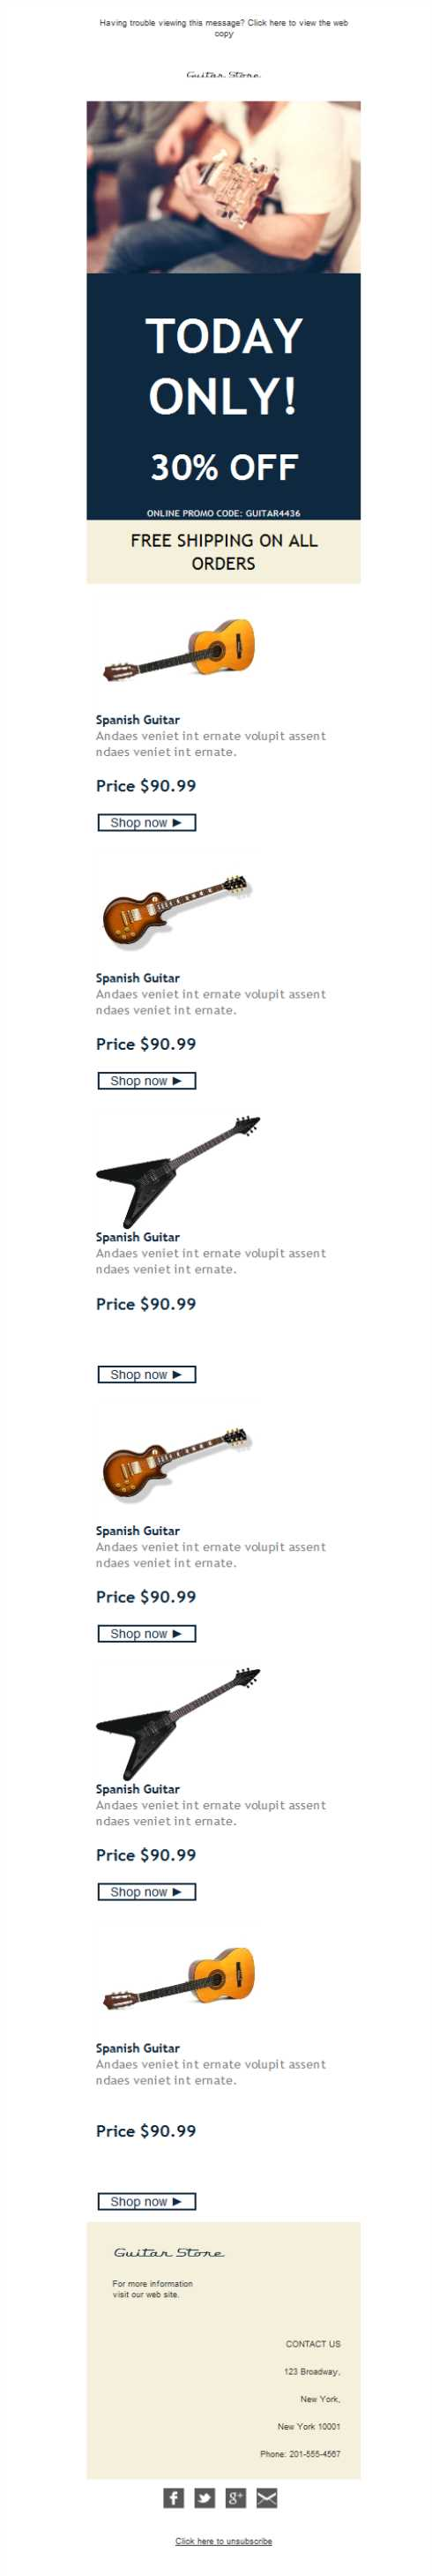 Templates Emailing Music Instruments Sale Sarbacane